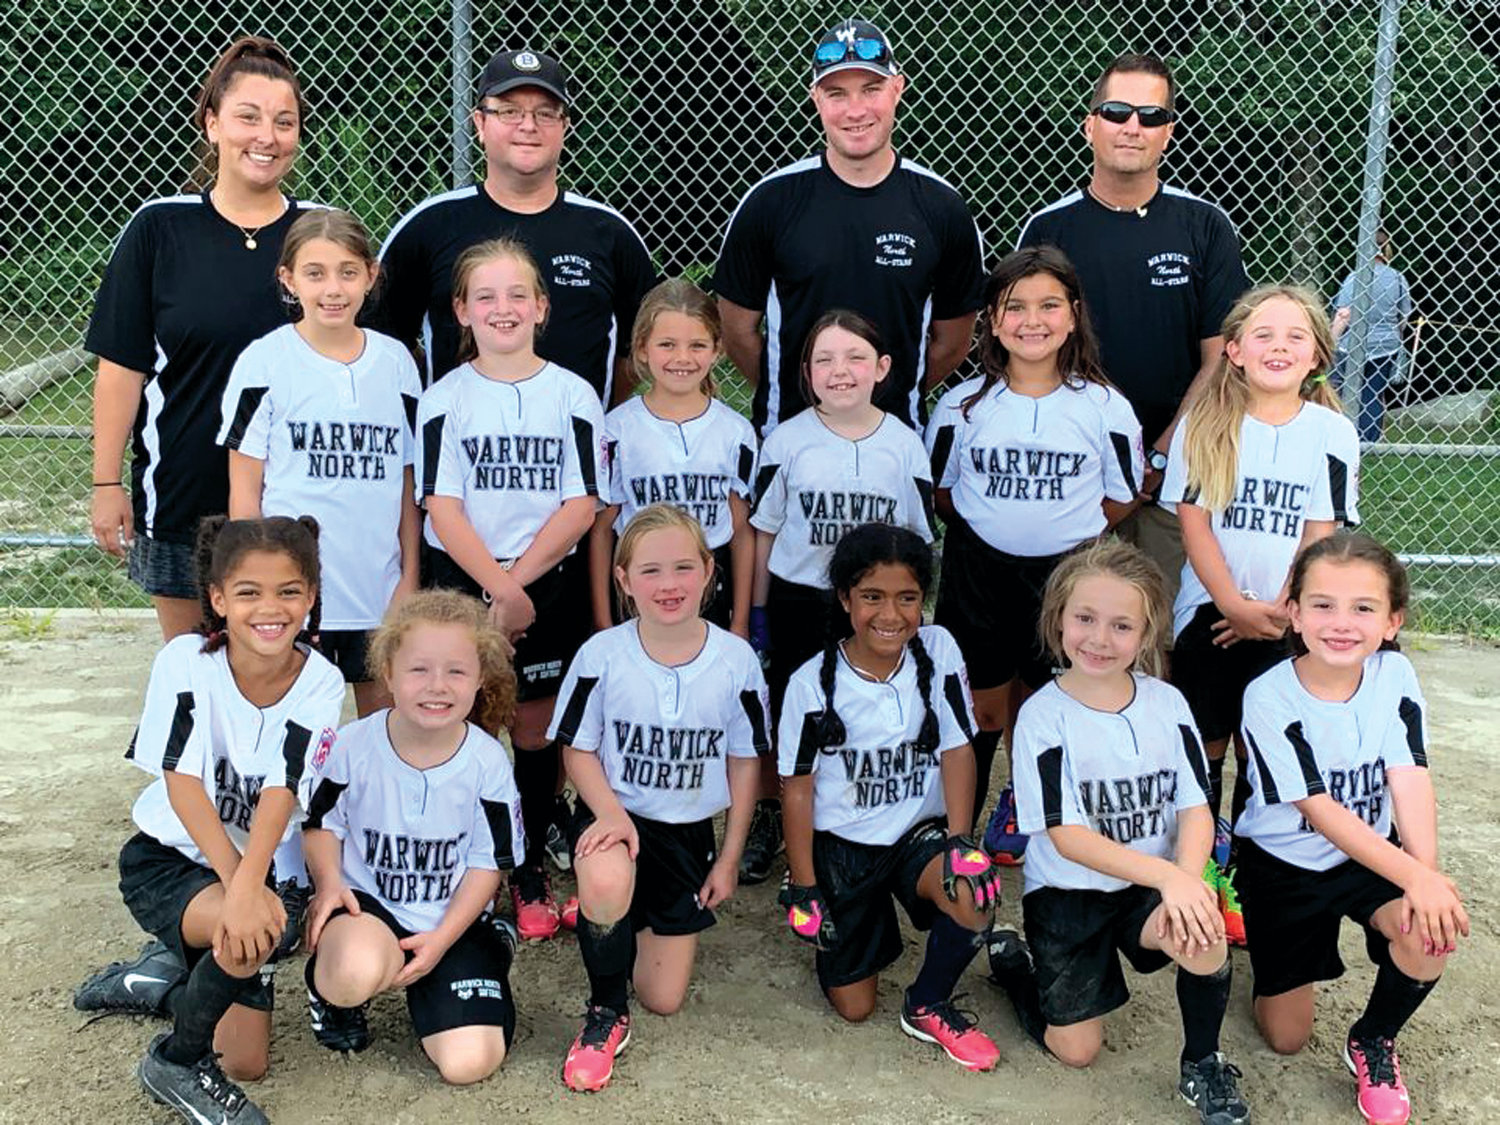 MAKING NOISE: The Warwick North 8's during their state tournament run. Members of the team included: Gabriella Pettinato, Cienna Fatorma, Nora Wood, Lyla Amitrano, Faith DiCarlo, Zoey Skinnard, Lorelei Hennion, Camden Zuercher, Bailee Lowe, Sara Sullivan, Ava Toher, Aubrey Nichols and Emily Lugo.